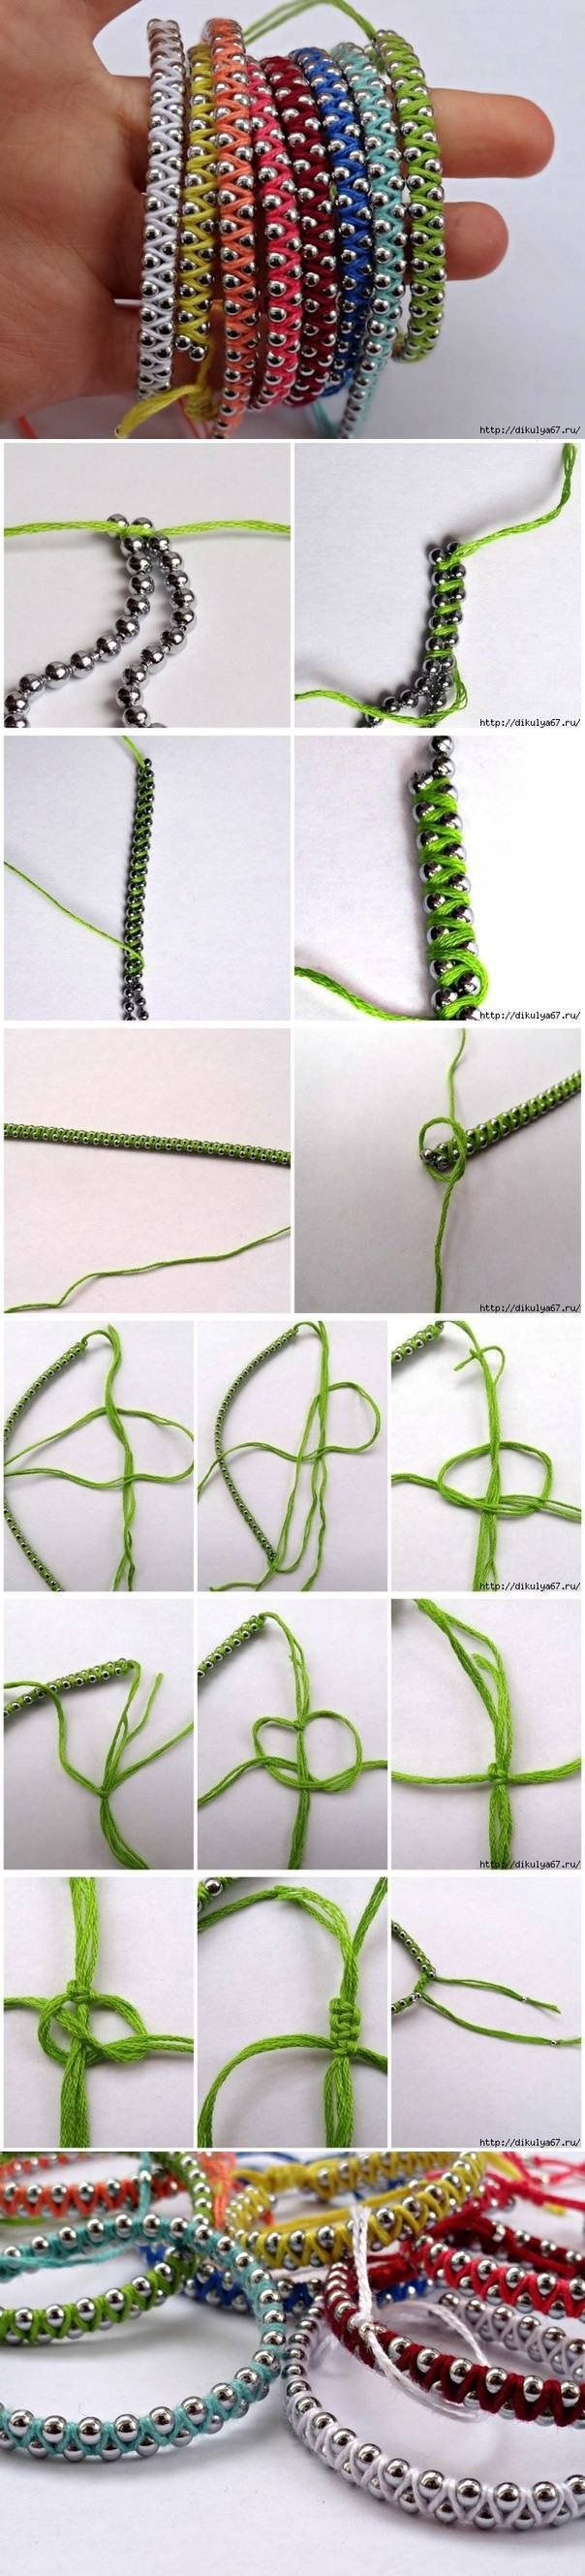 how to make string necklaces by ice